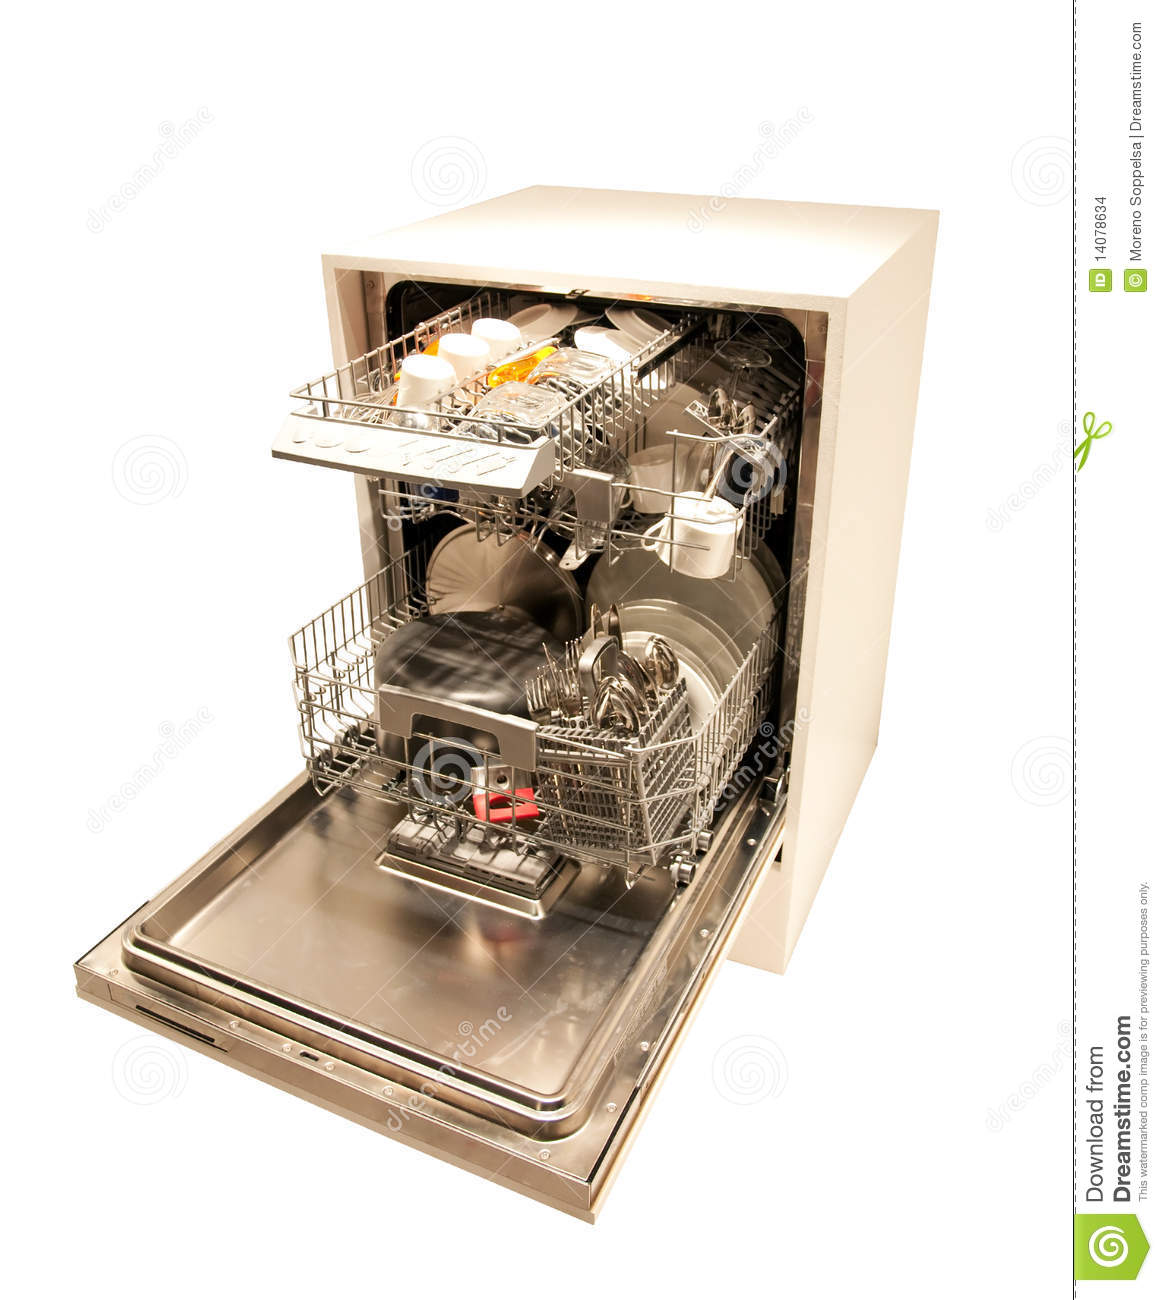 Modern Dishwasher Open Filled With Dishes And Cutlery Isolated On